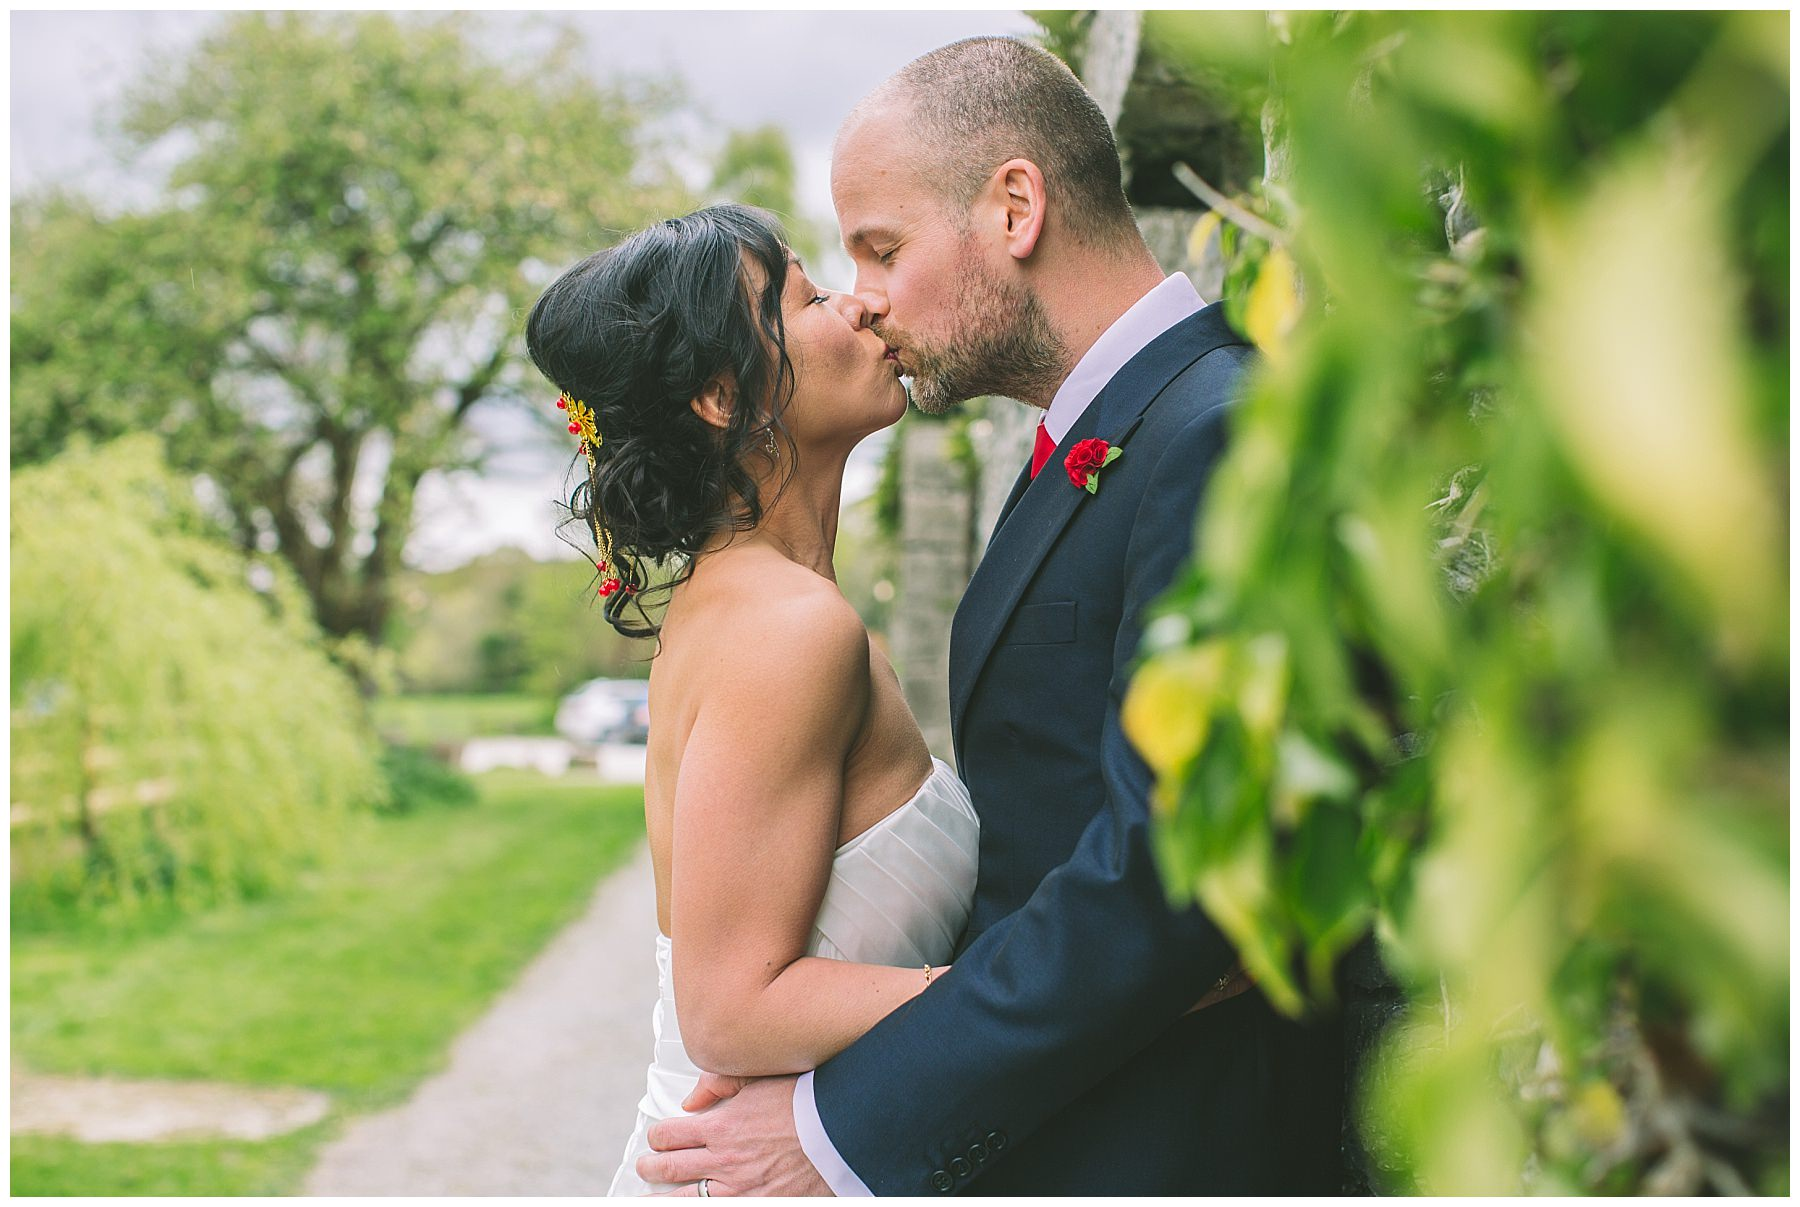 Newlyweds share a kiss amongst the Ivy